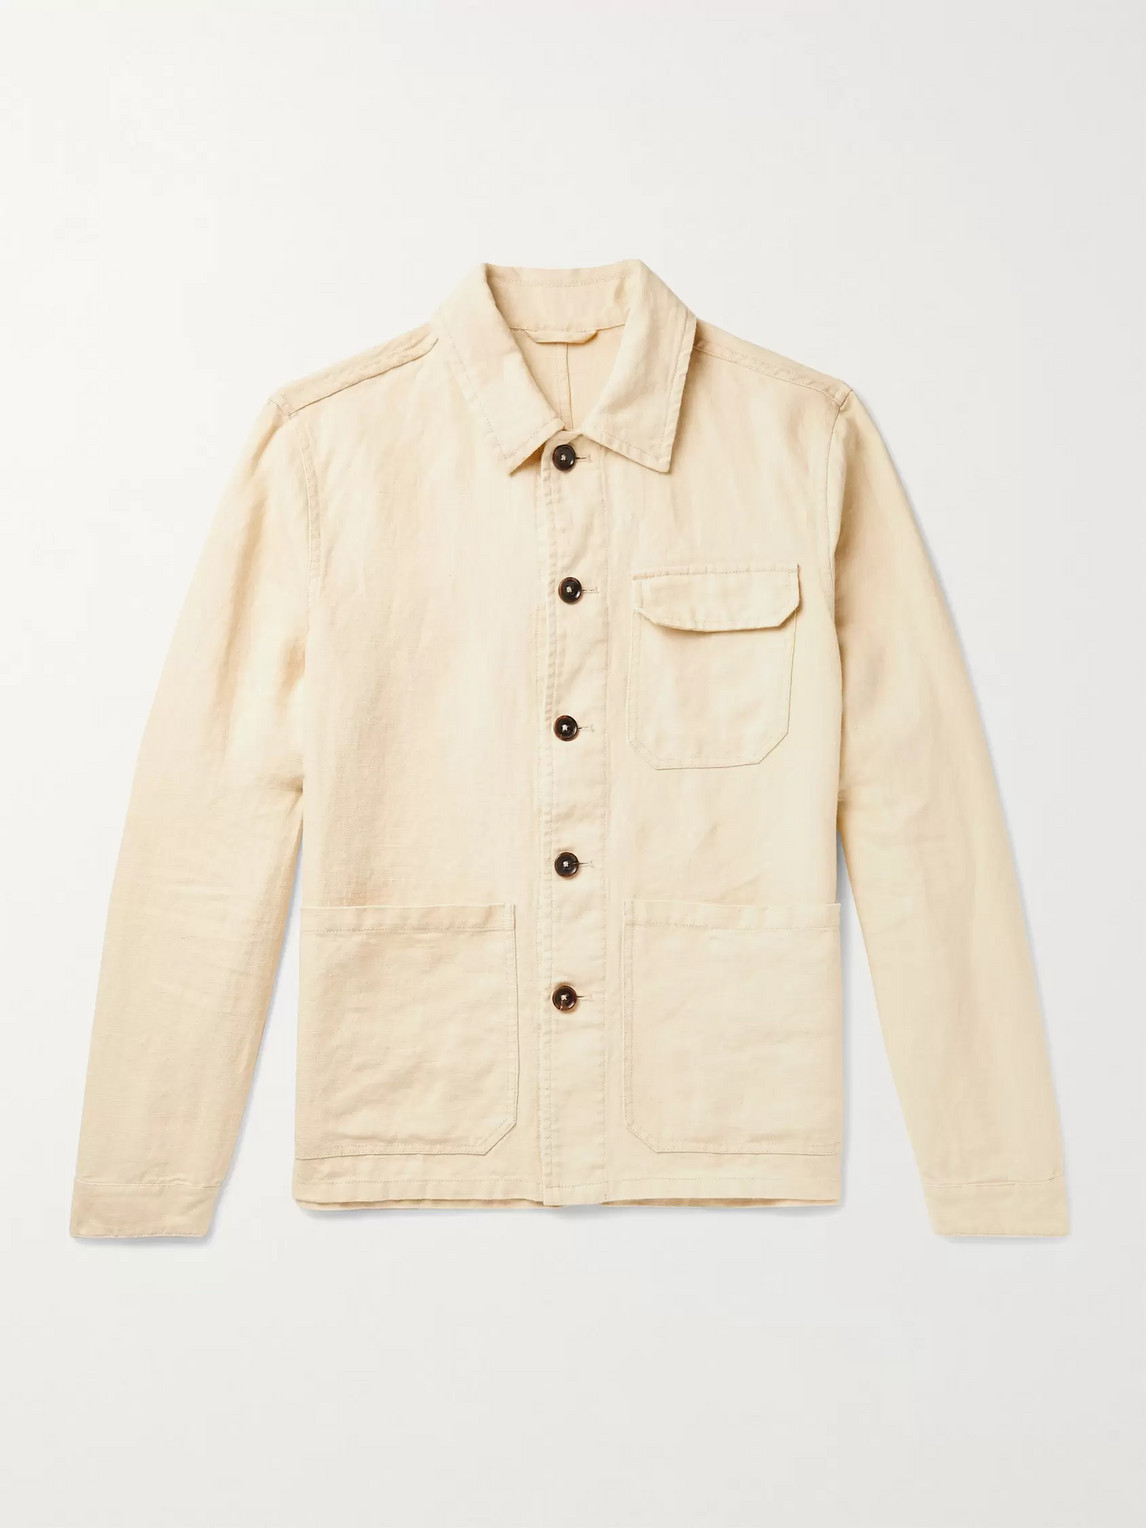 Incotex Linen Shirt Jacket In Yellow